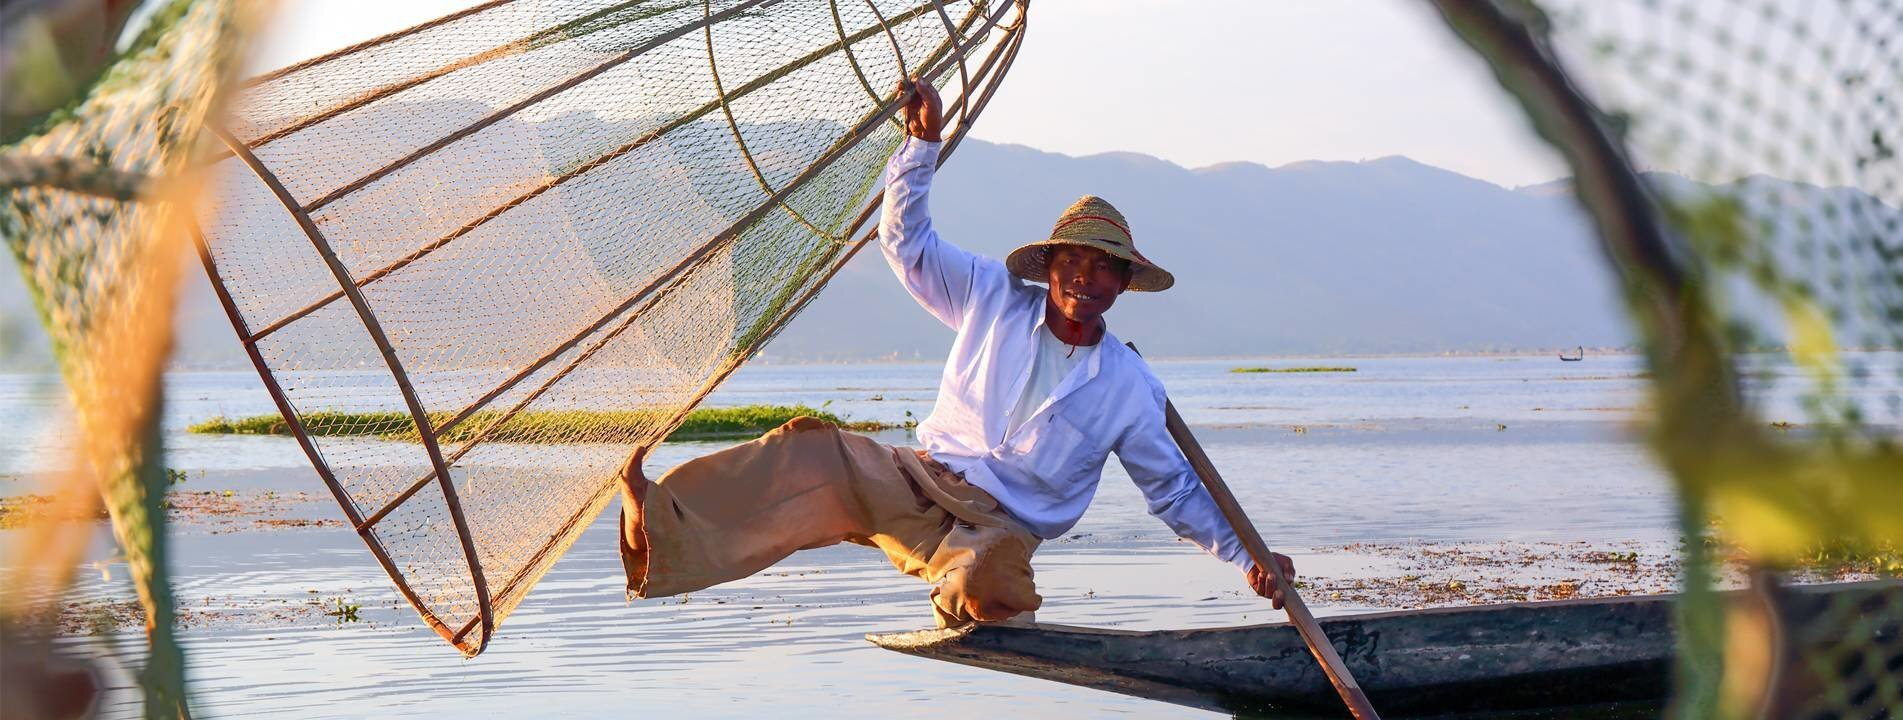 14-Day Myanmar and Thailand Essence Tour